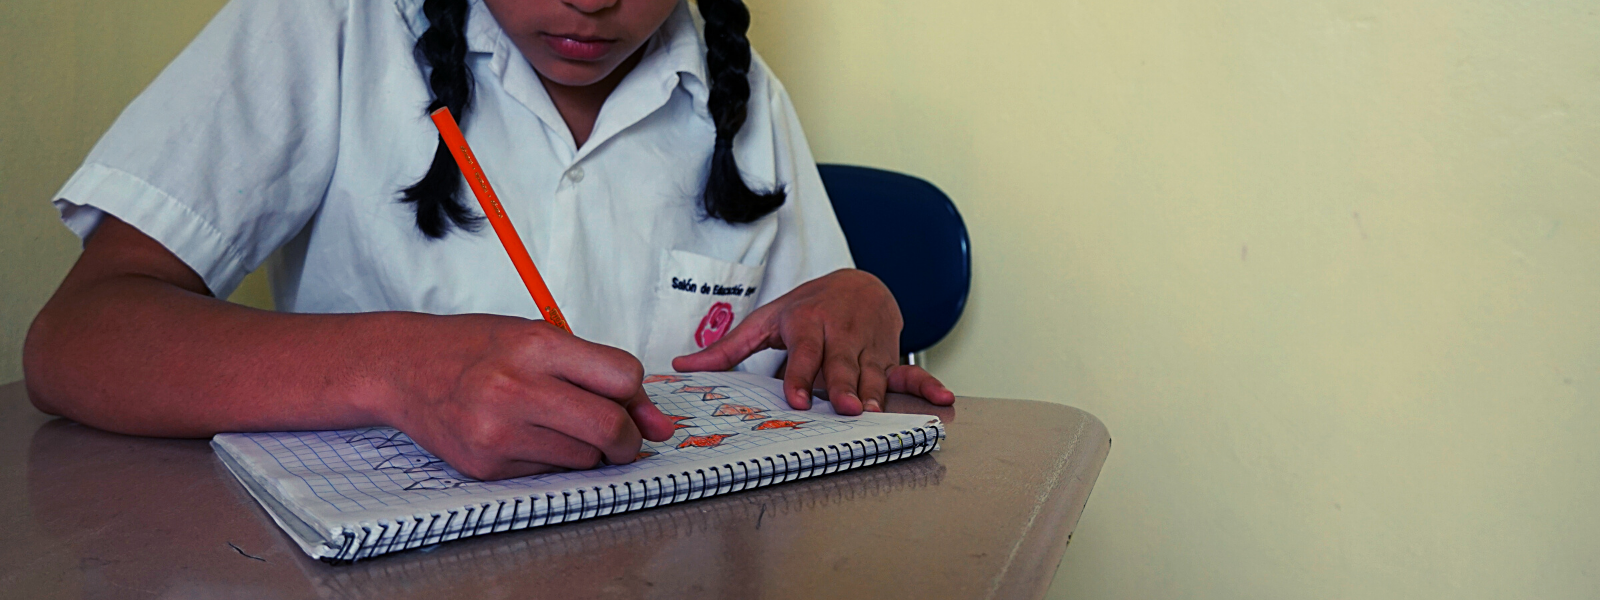 Contribute to these Little Girls' Education with a Donation Today! image